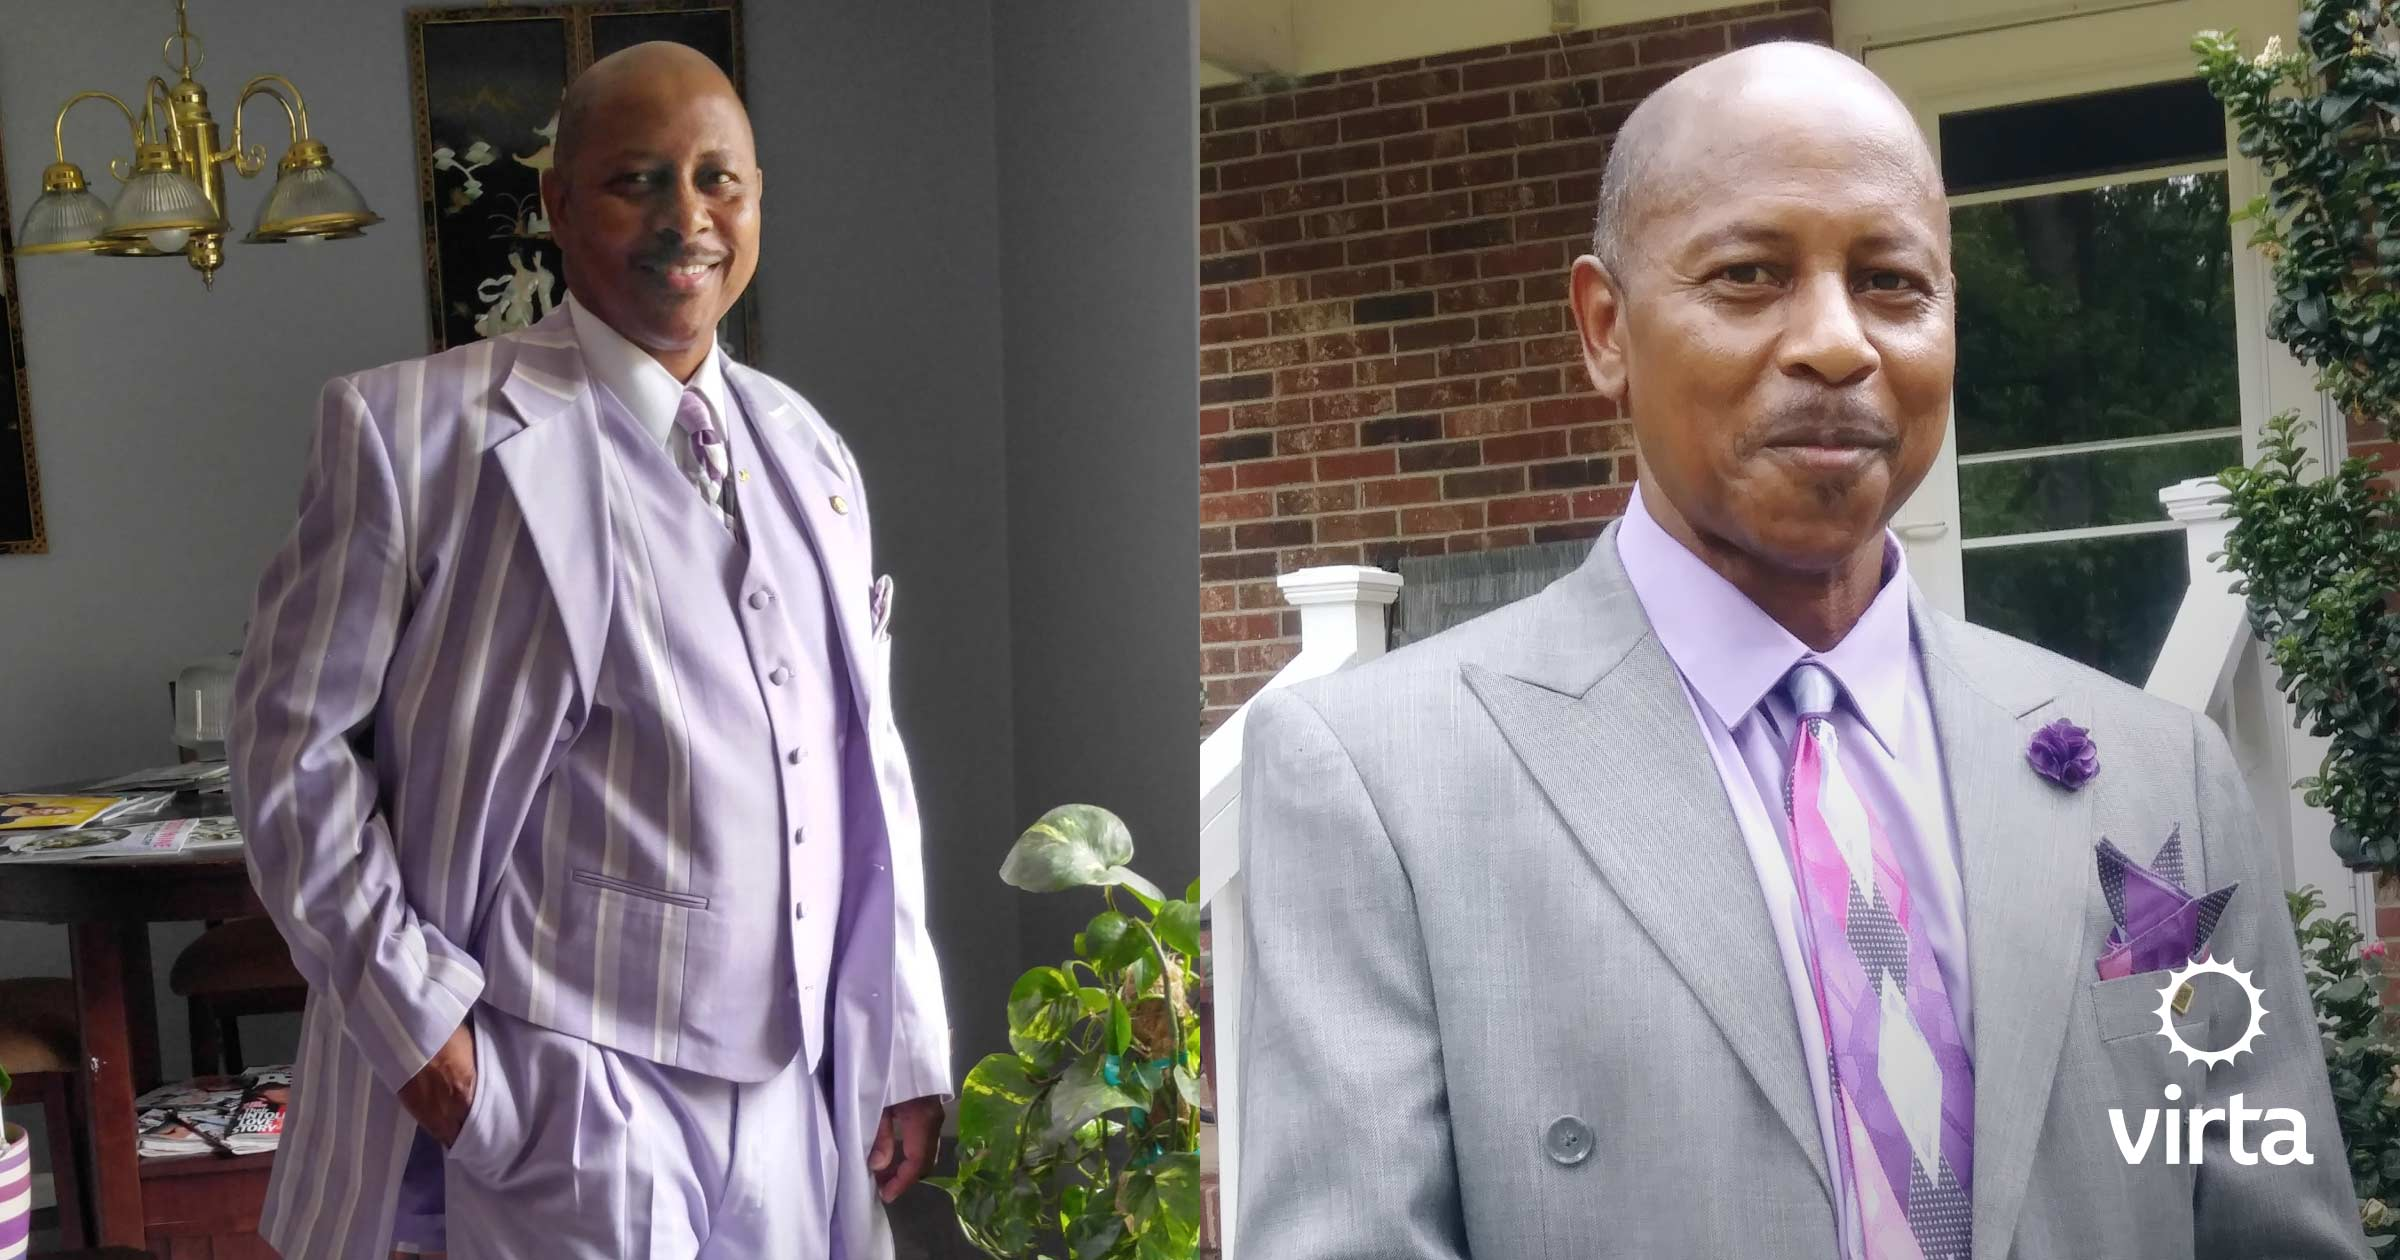 Kenneth needed a new wardrobe after losing 30 pounds